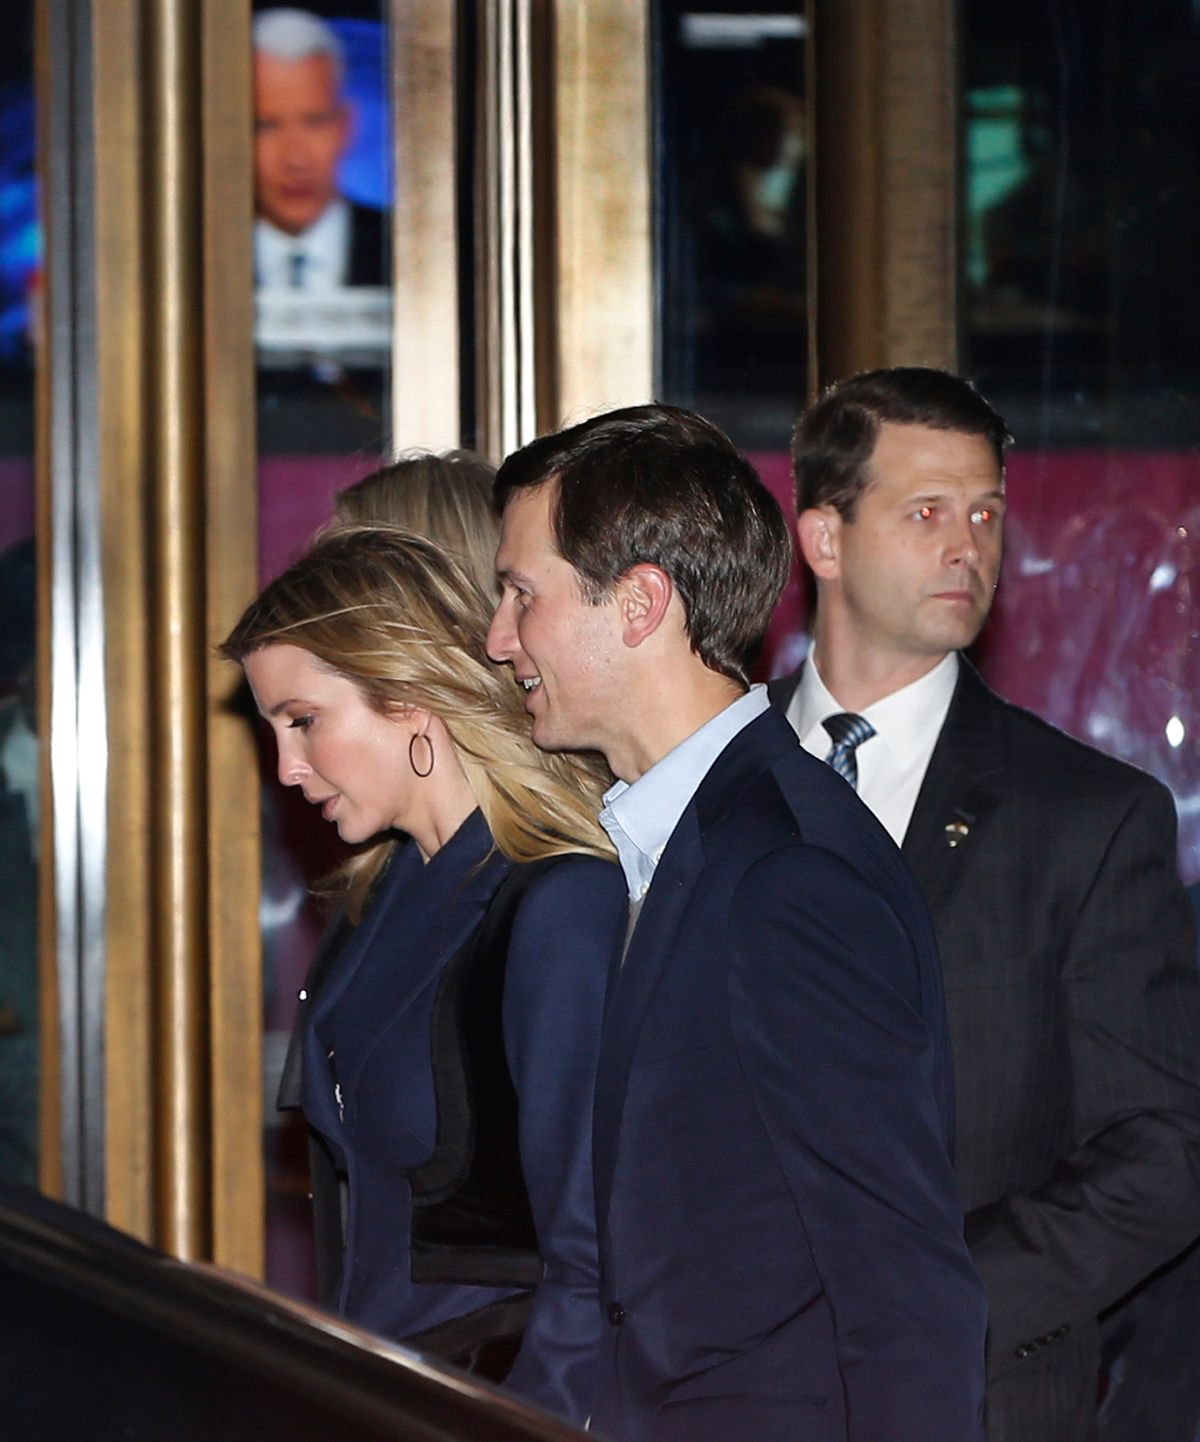 Ivanka Trump and her husband Jared Kushner walk past the Paley Center for Media as they leave the 21 Club after dining with President-elect Donald Trump on Tuesday, Nov. 15, 2016, in New York. (AP Photo/Kathy Willens) (AP Photo/Kathy Willens)